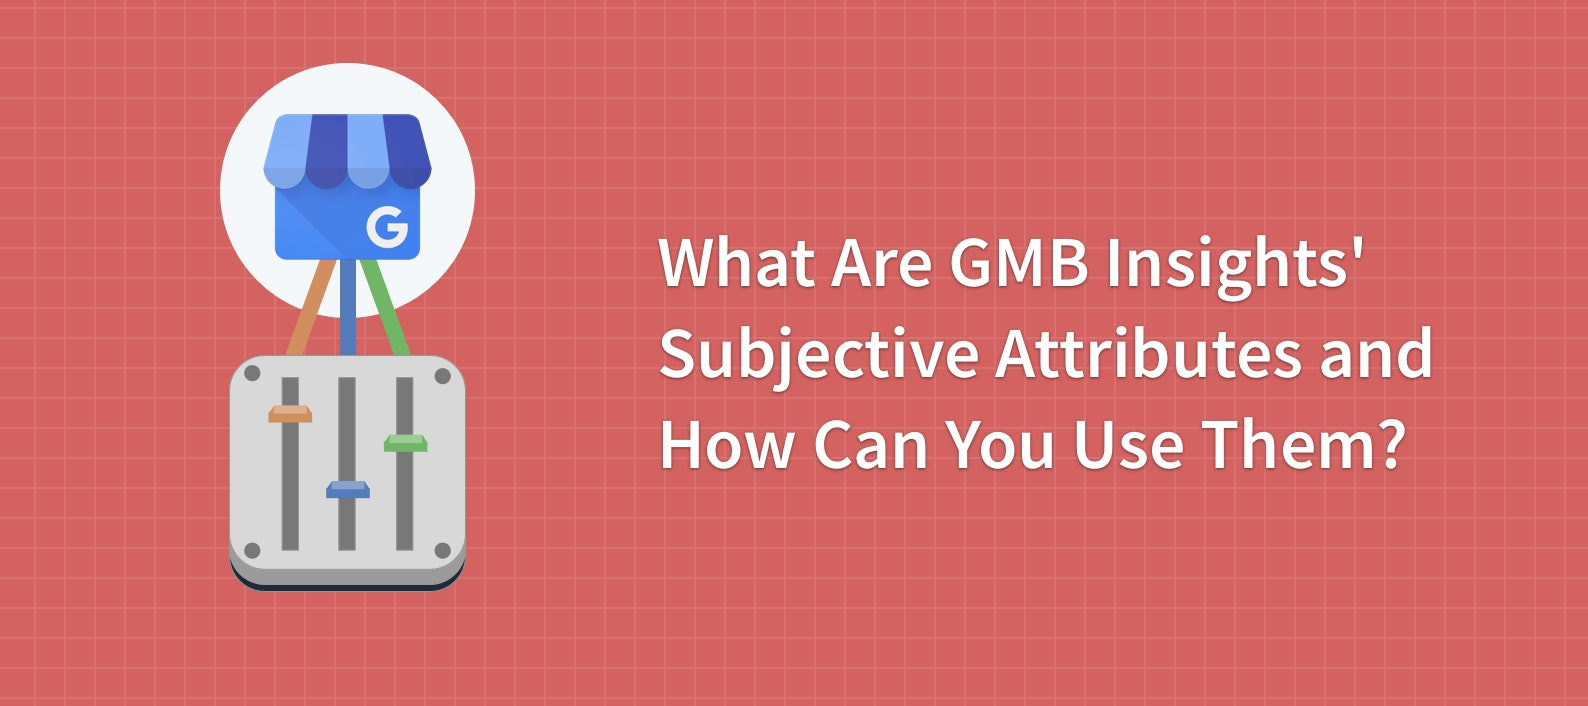 What Are Google My Business Insights' Subjective Attributes and How Can You Use Them?